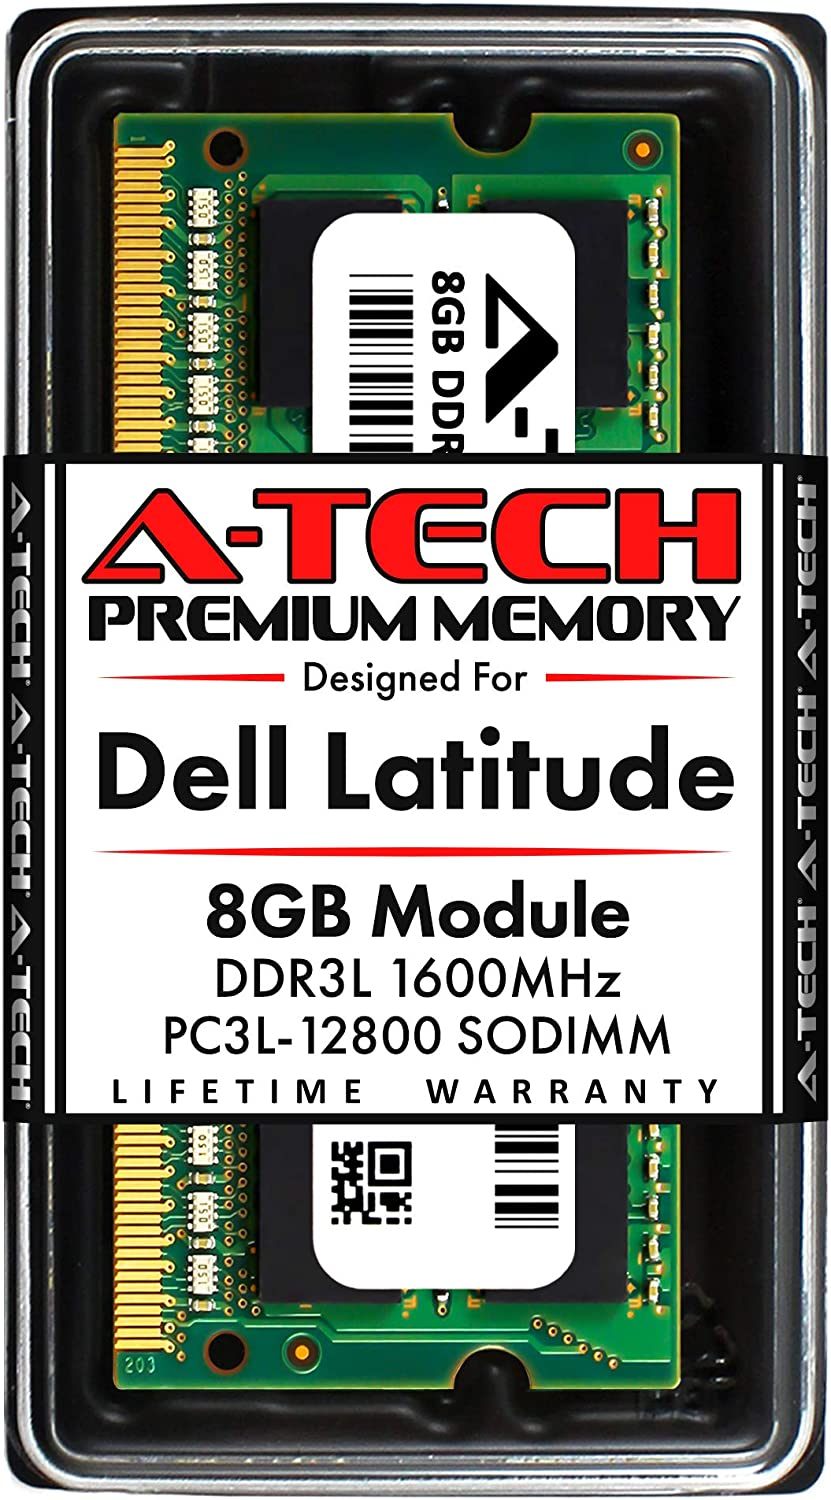 A-Tech 8GB RAM for Dell Latitude E6530, E6430, E6430s, 6430u, E6330, E6230, E5530, E5430, 3330 | DDR3/DDR3L 1600MHz SODIMM PC3L-12800 Laptop Memory Upgrade Module